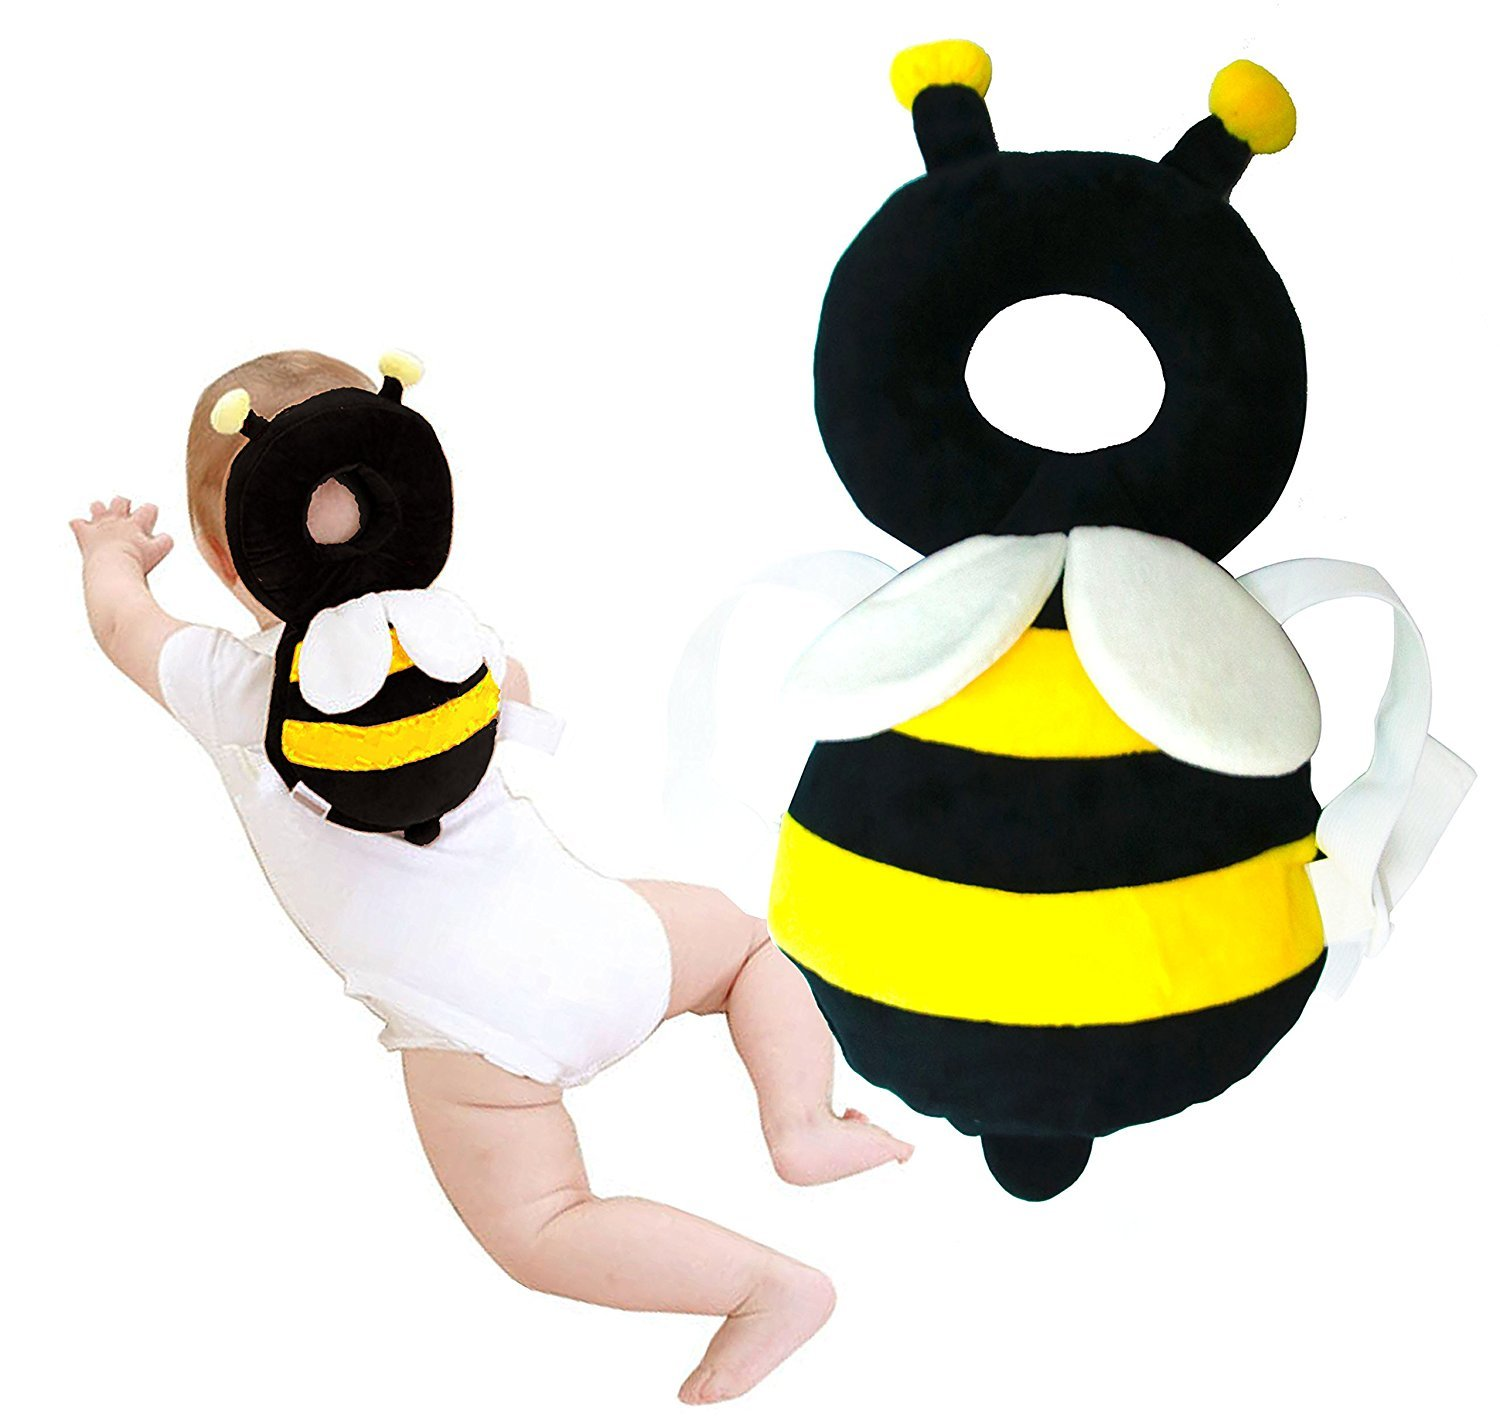 Baby Protector - Baby Adjustable Head Shoulder Safety Pad - Baby Head Cushion with Flexible Strap for Baby walking - for Baby Safety - for Crawling Baby - 4-24 Months Babies (Little Bee) Neyroz